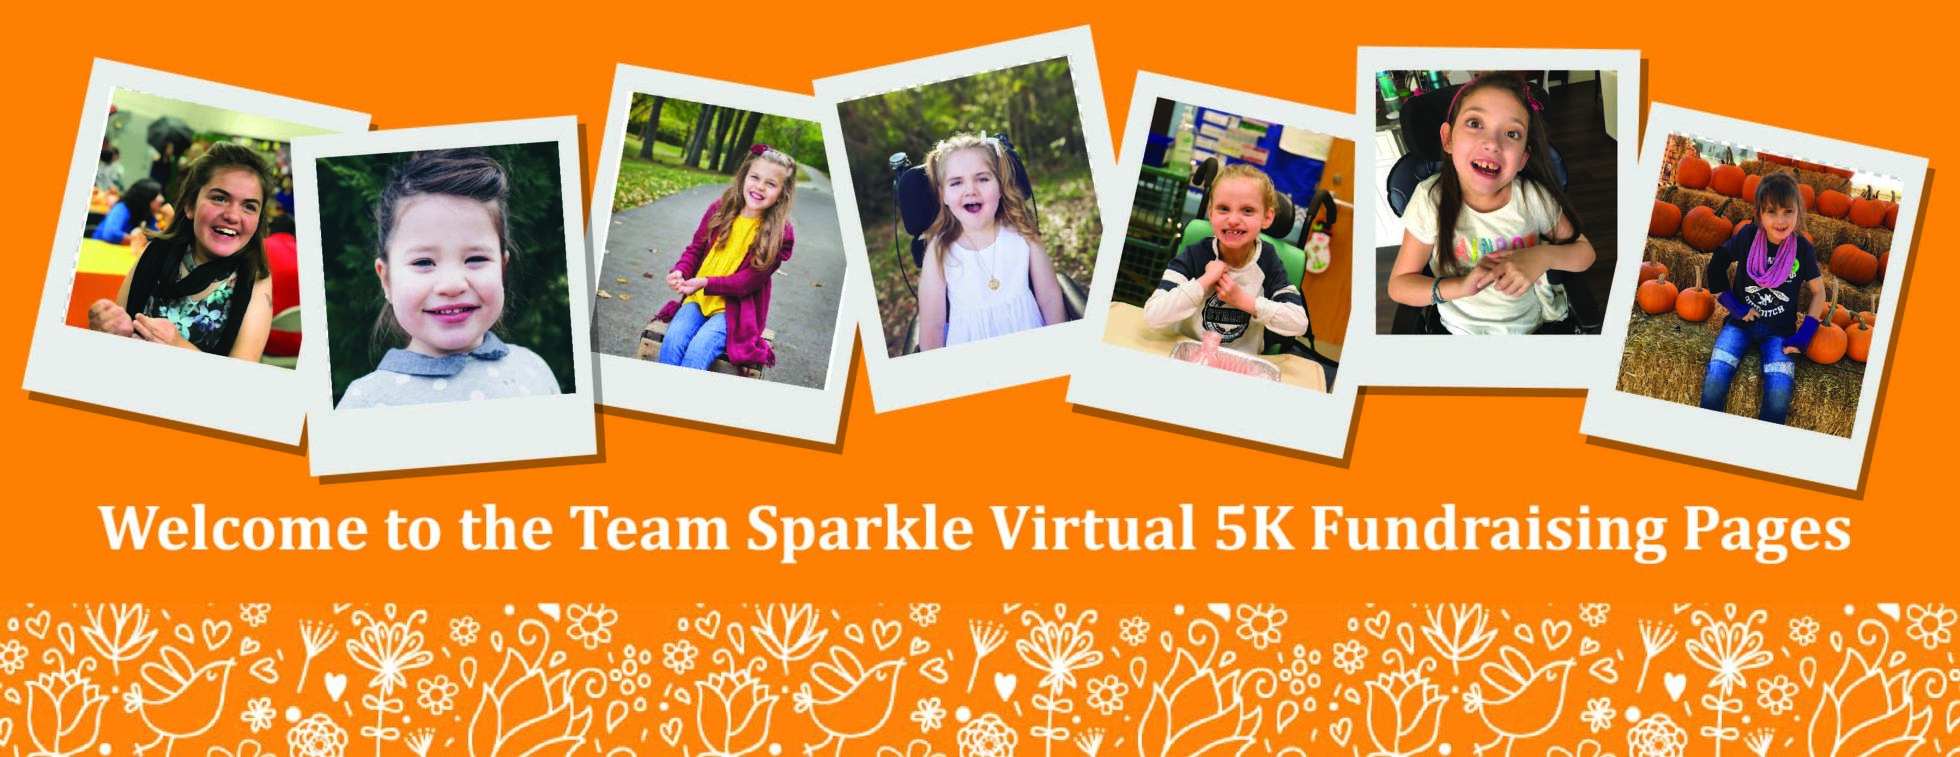 2019 Team Sparkle Virtual 5K Fundraising Pages